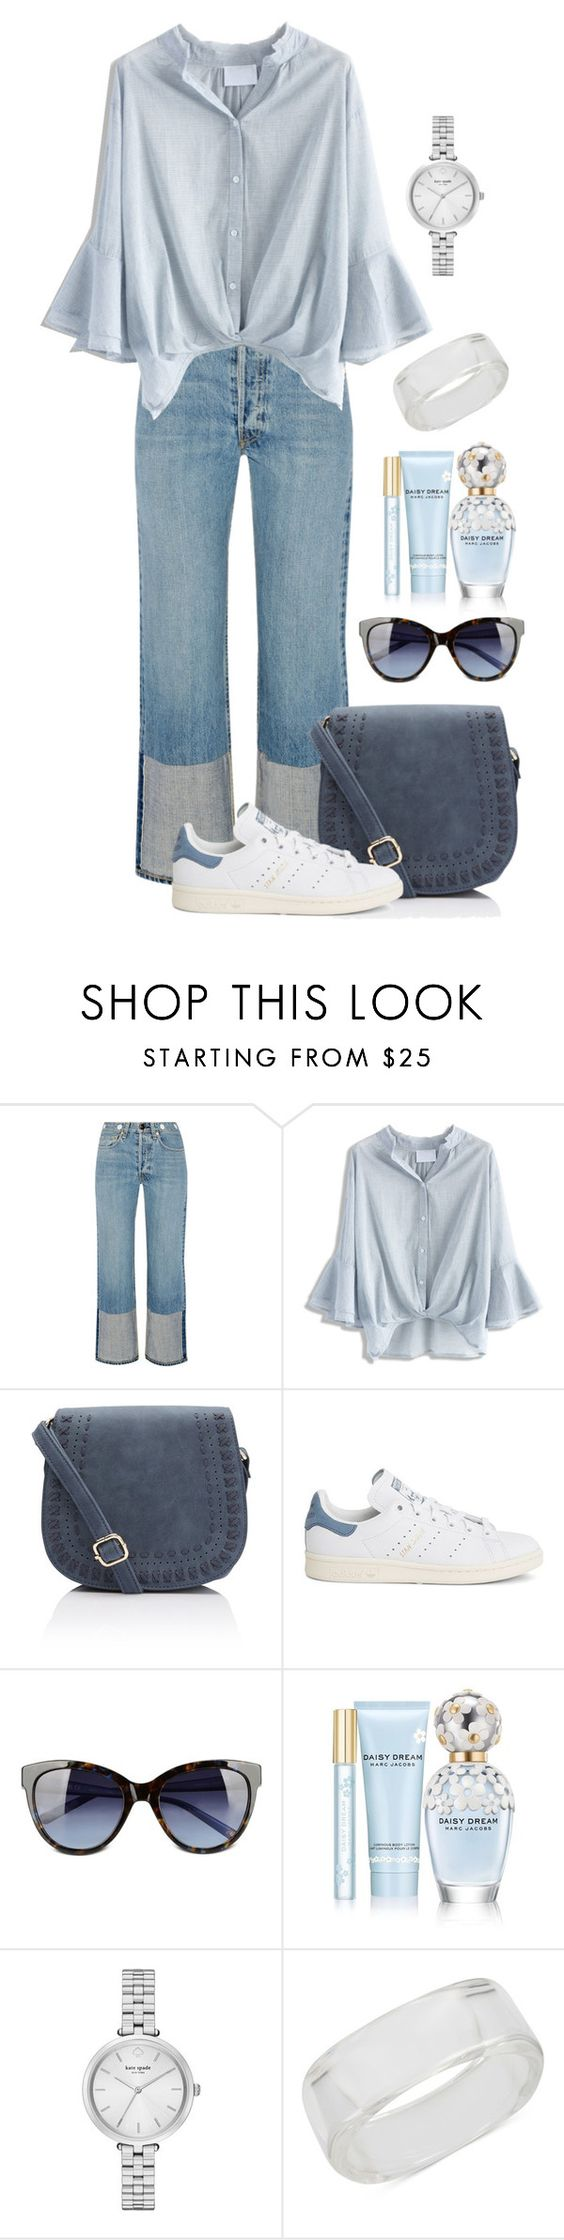 """Untitled #1529"" by ebramos on Polyvore featuring rag & bone, Chicwish, adidas, Love Moschino, Marc Jacobs, Kate Spade and INC International Concepts"